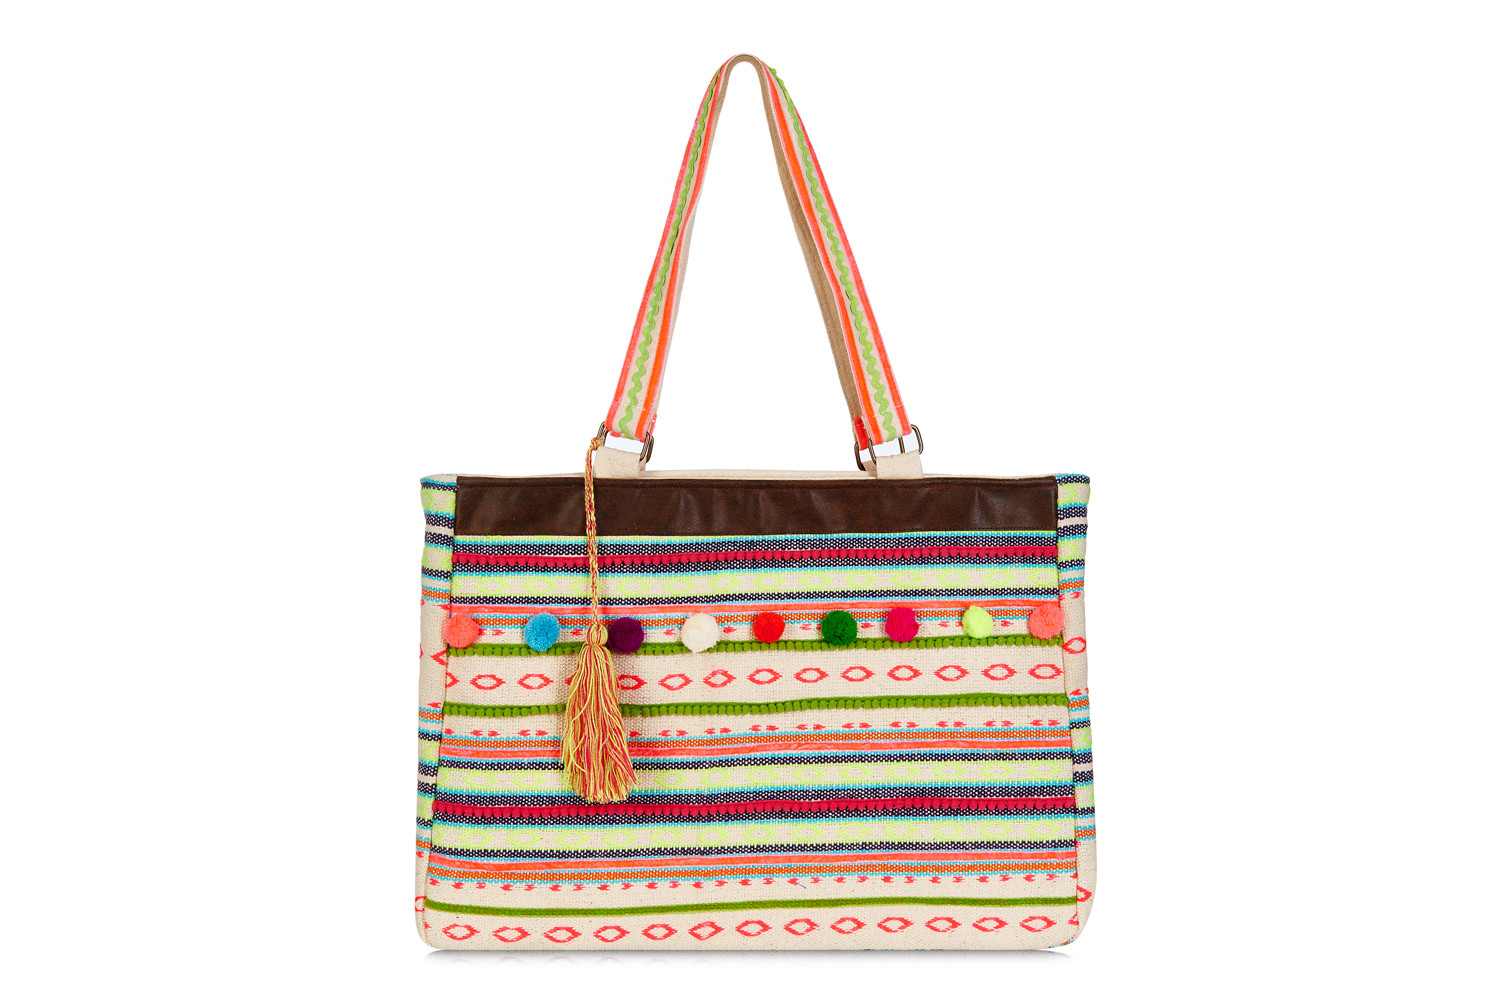 This bright and vibrant collection of bags will leave you feeling all summery. Handwoven from a cotton blend, choose from a multi coloured large tote with neon yellow fringing £75, a striped beach bag with fun pom-poms £45 or a funky clutch with a large tassel zip £30. Made with lots of care and attention to detail, you won't want to leave the house without one! Available at ChiChi Boutique, St Aubin